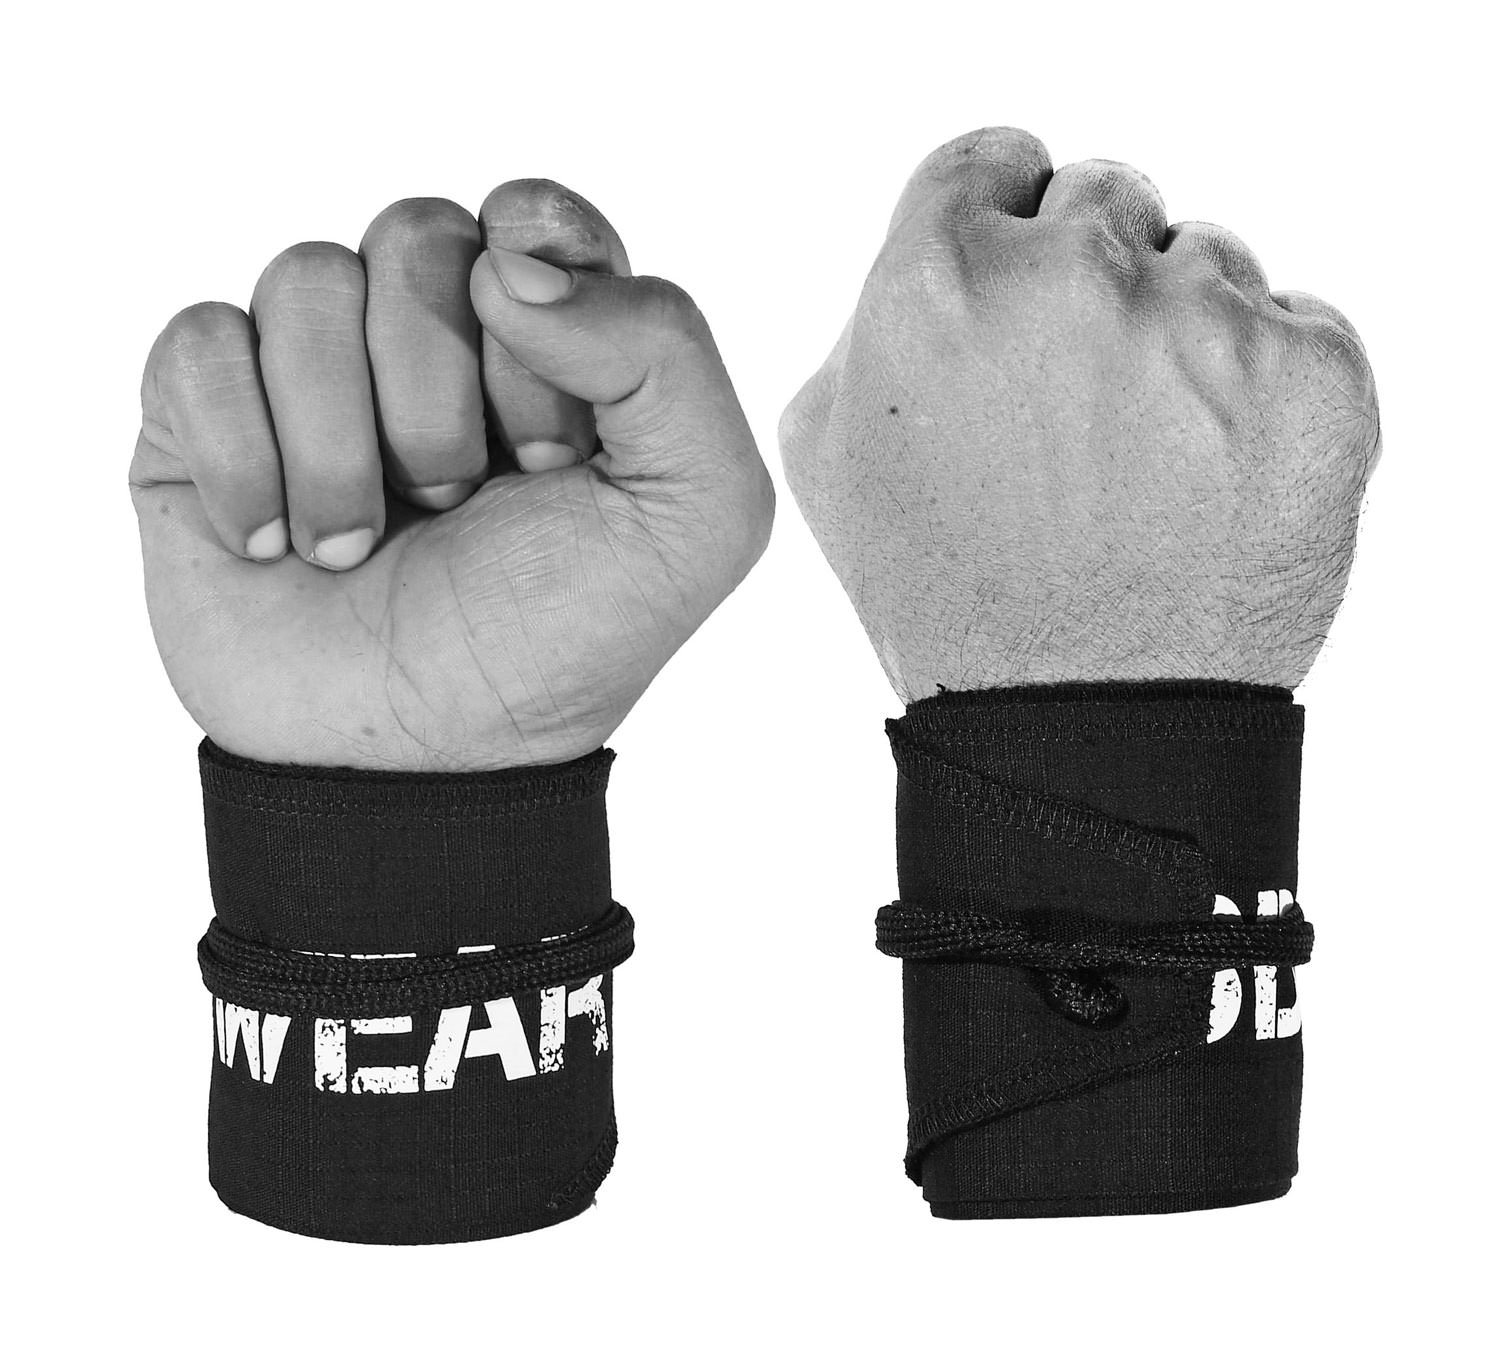 Wrist Wraps for WODs, Fitness, Cross Training, Exercise, Bodybuilding, Olympic Weightlifting - Colors for Men and Women - Once Size Fits All - 100% (Black/Black) by WOD Wear